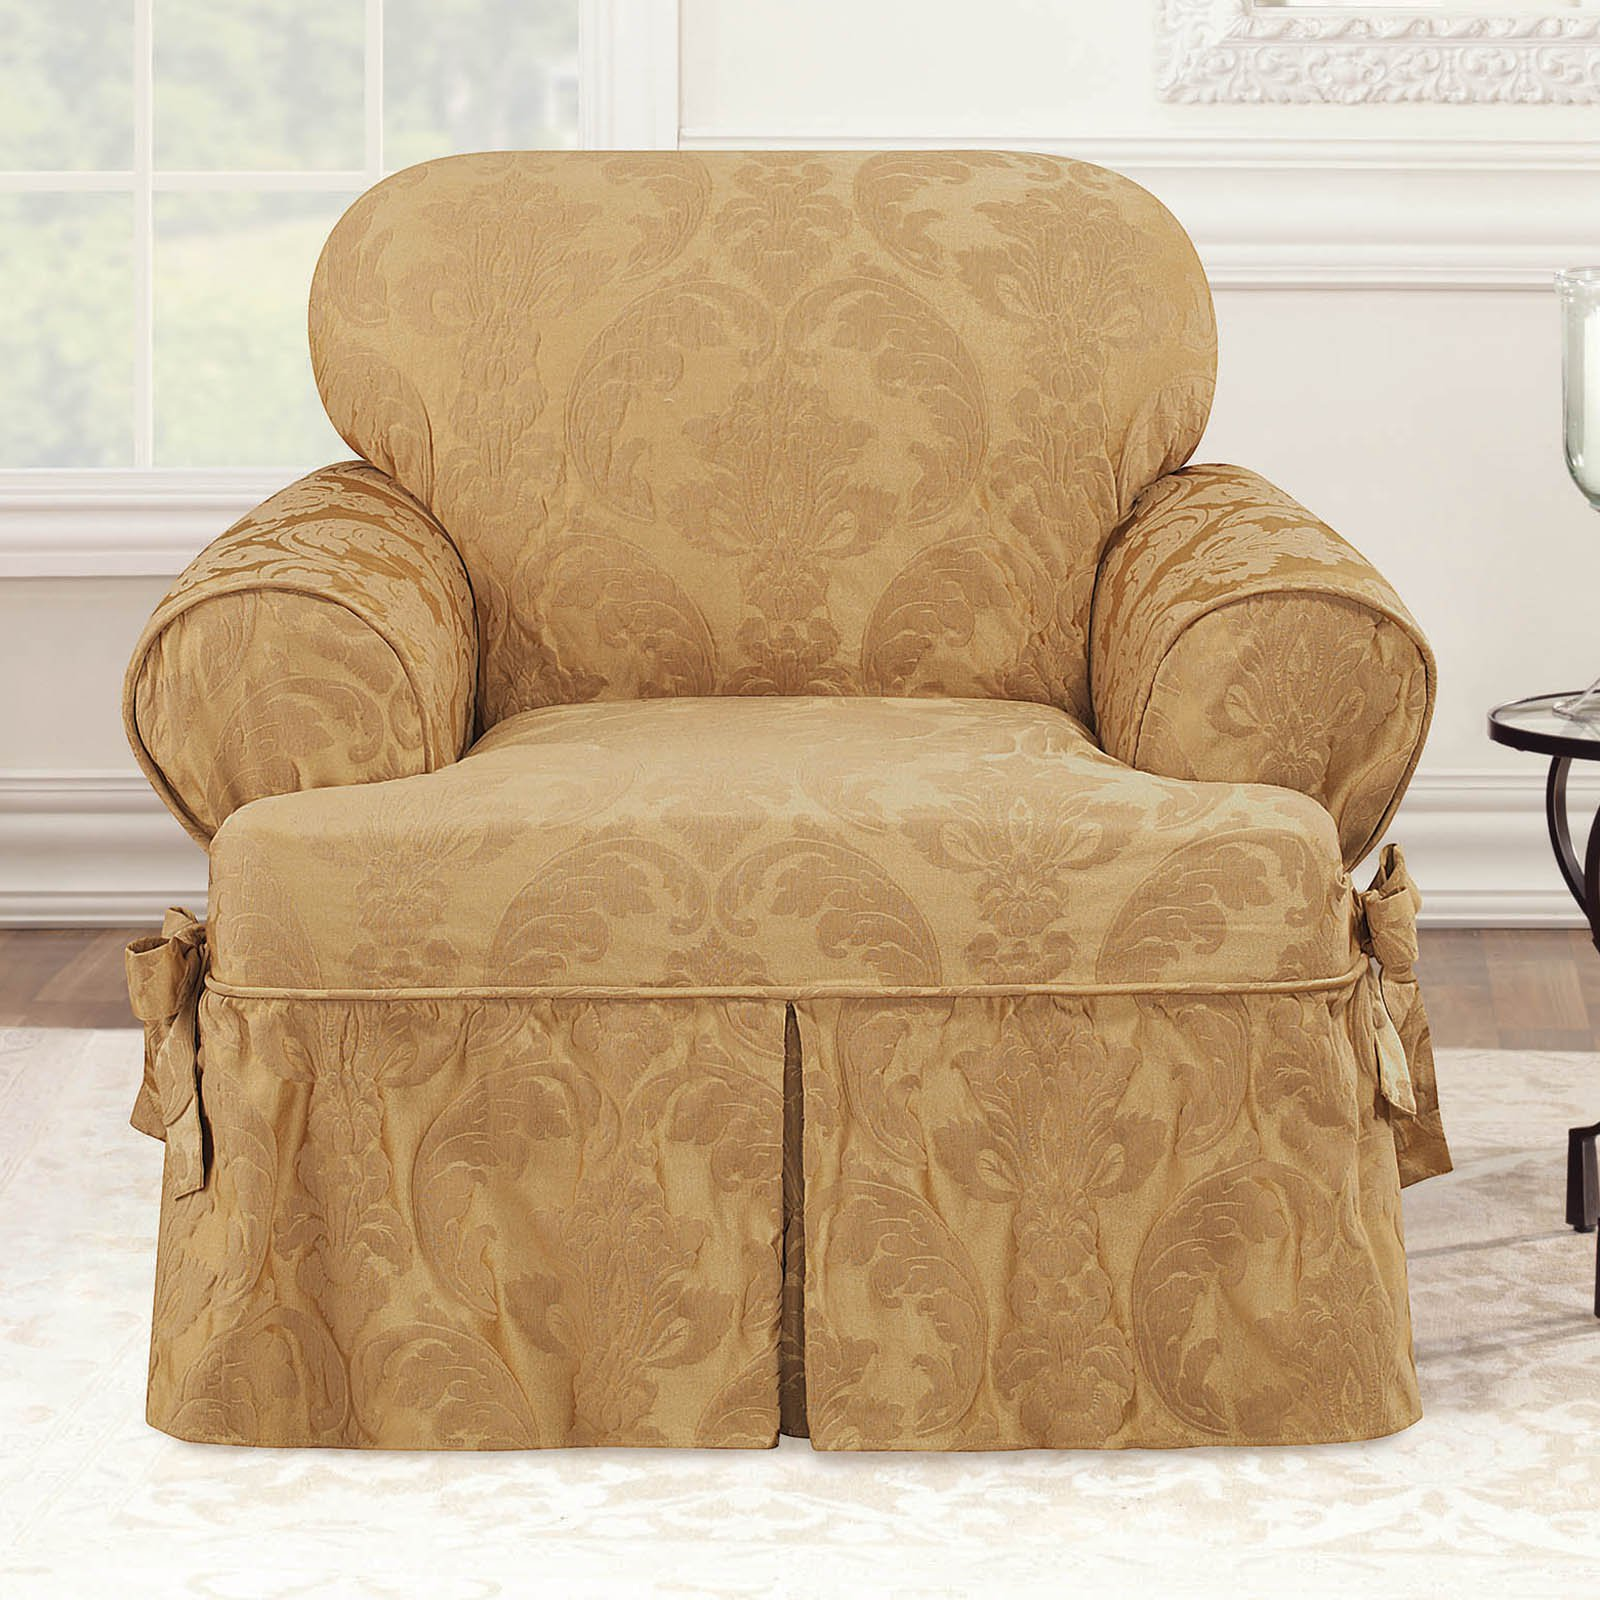 Sure Fit Matelasse Damask T-Cushion Chair Slipcover